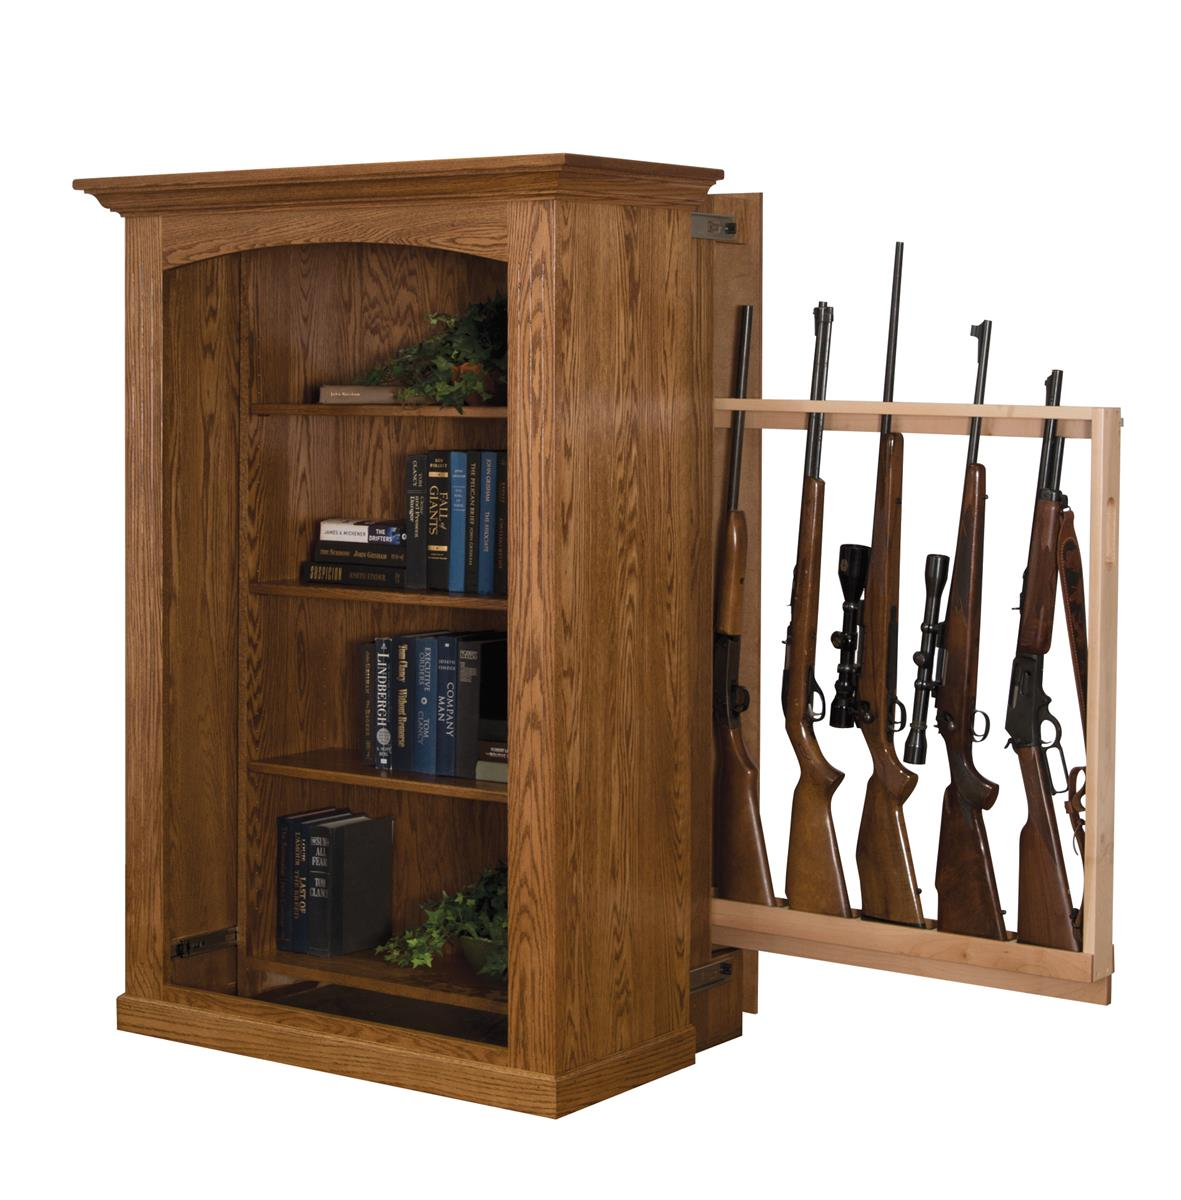 patriot ii - small bookcase with hidden gun cabinet LHDJIQD